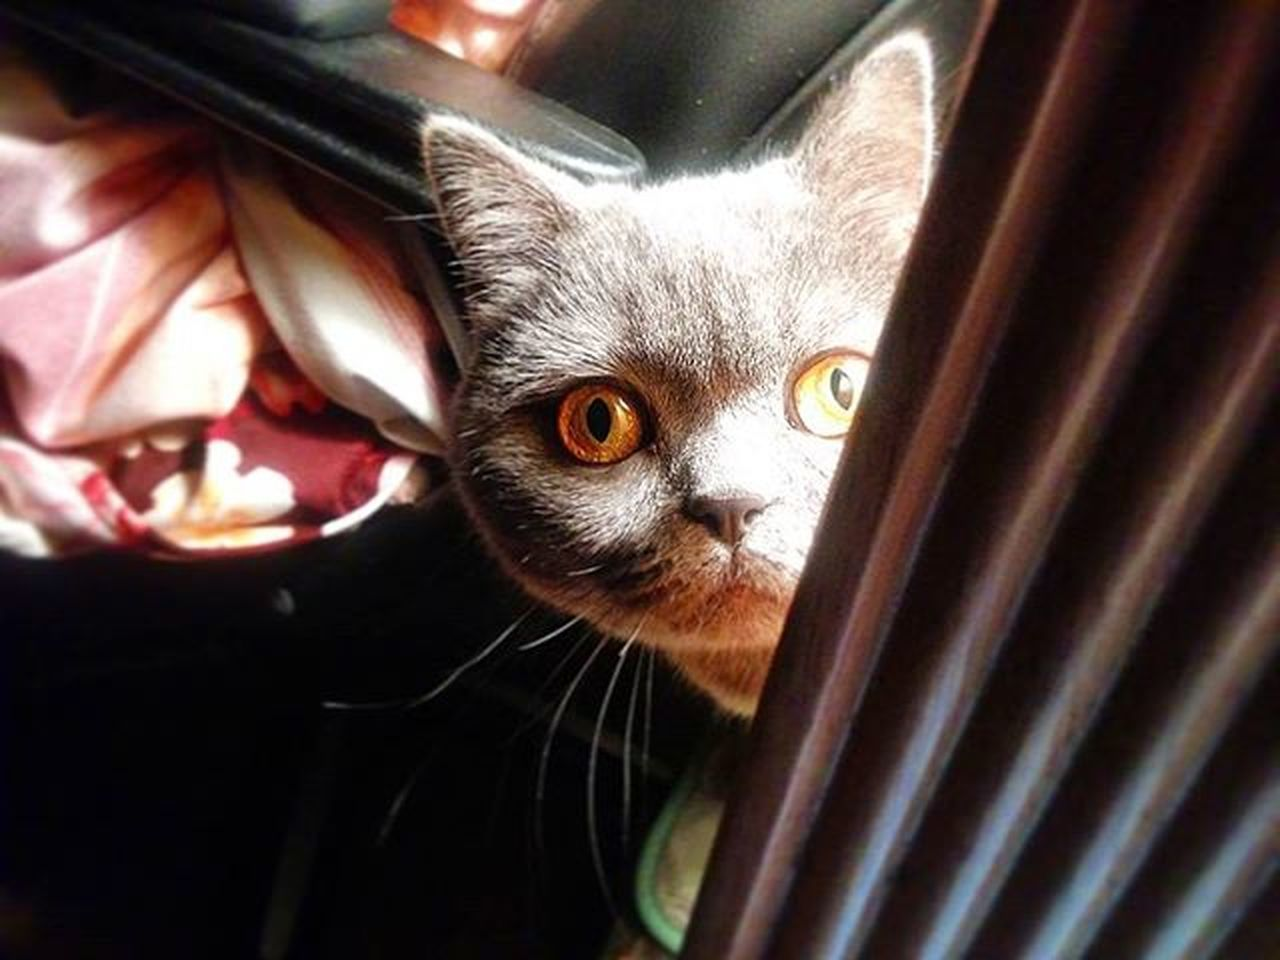 What are you looking? Cat Morning Britishgreycat Britishshorthair Britishgreycats Picoftheday Ghost Memories Color Palette Color Of Life EyeEm Diversity The Secret Spaces BYOPaper! Visual Feast The Photojournalist - 2017 EyeEm Awards EyeEmNewHere